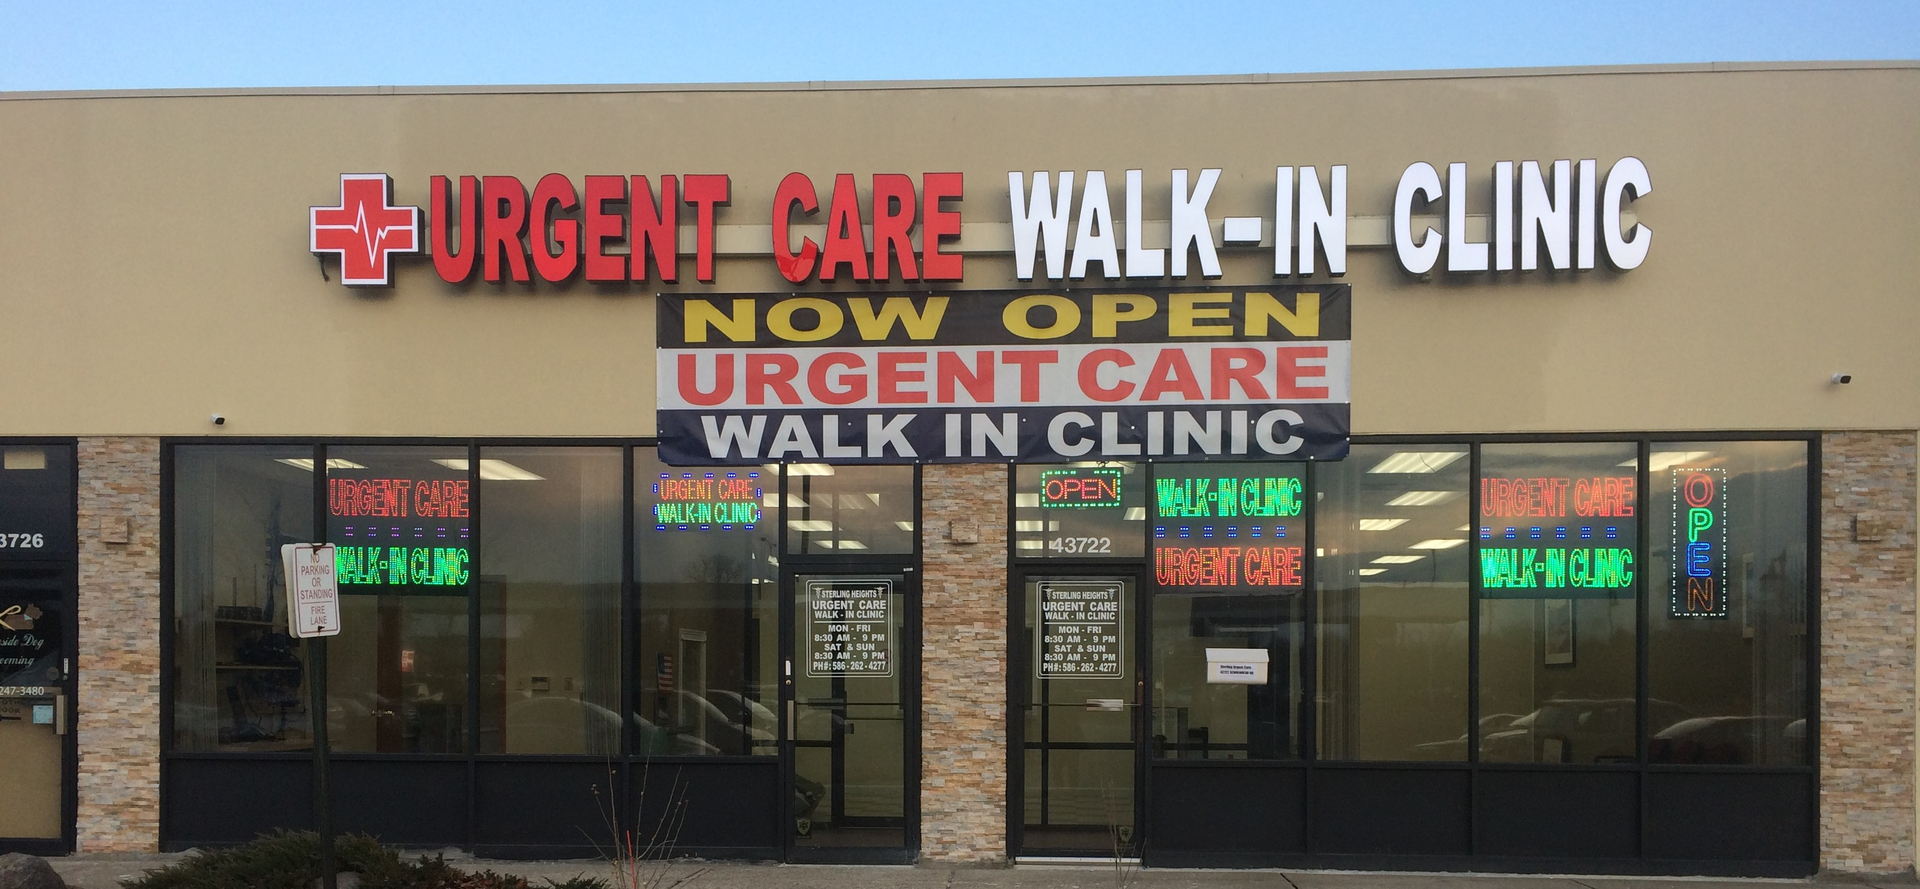 Doctors Urgent Care Walk-in Clinic - Sterling Heights reviews | 43722 Schoenherr Rd - Sterling Heights MI